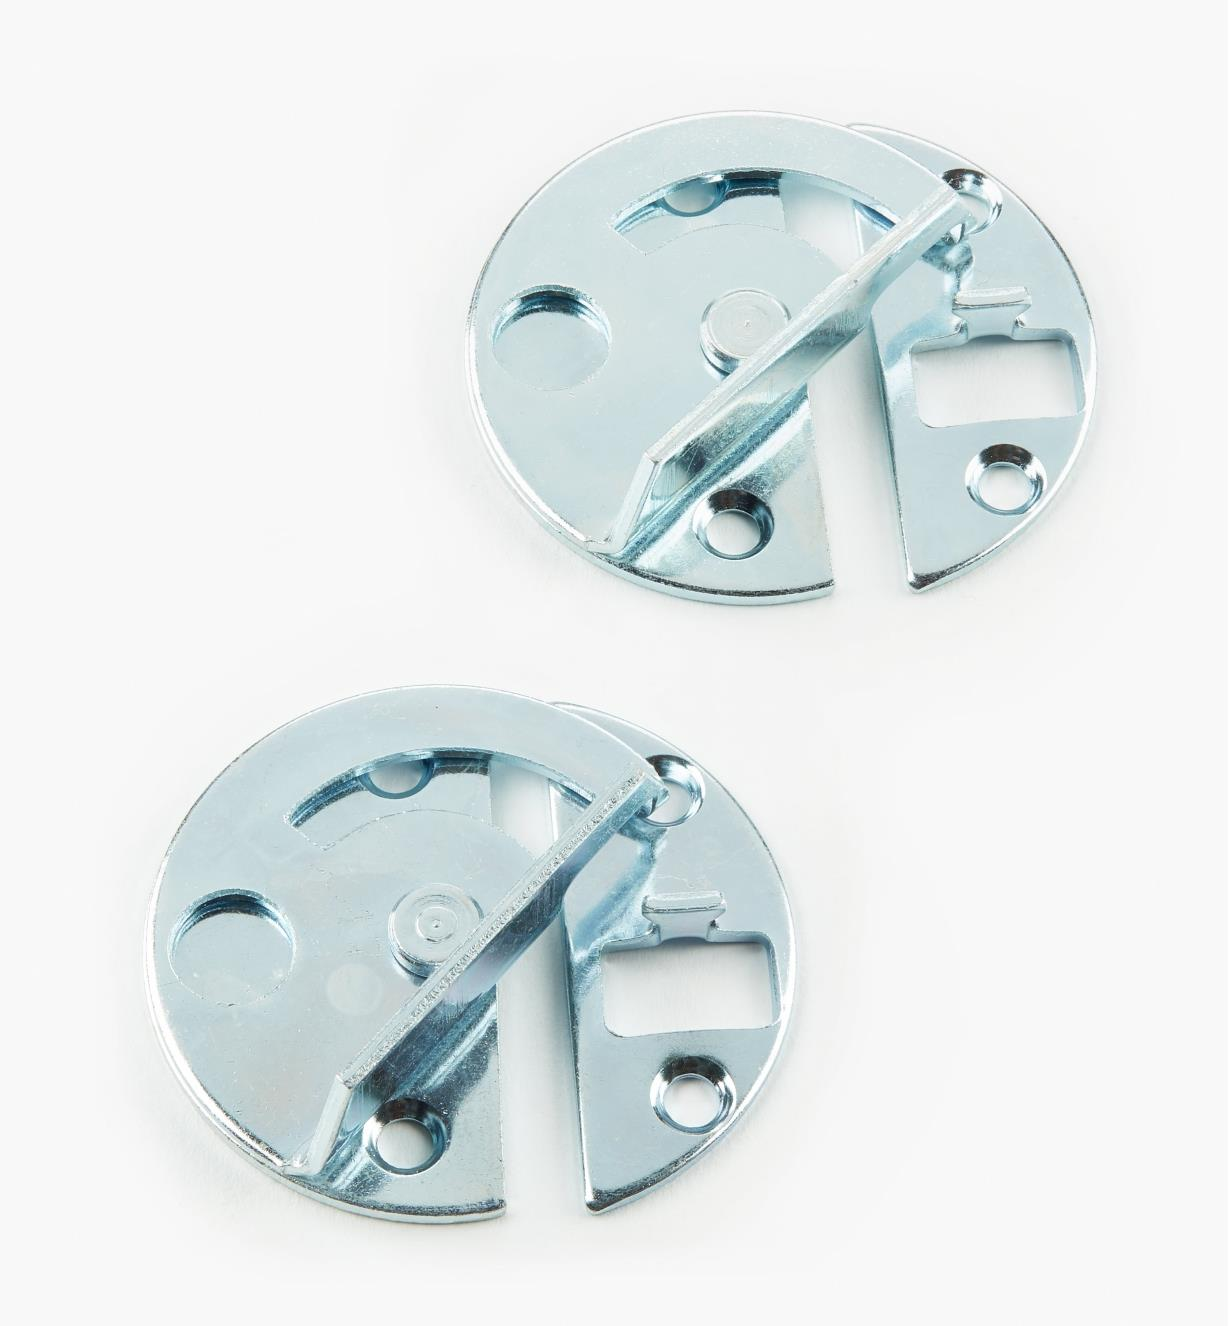 00S1022 - Table-Leaf Fasteners, pair